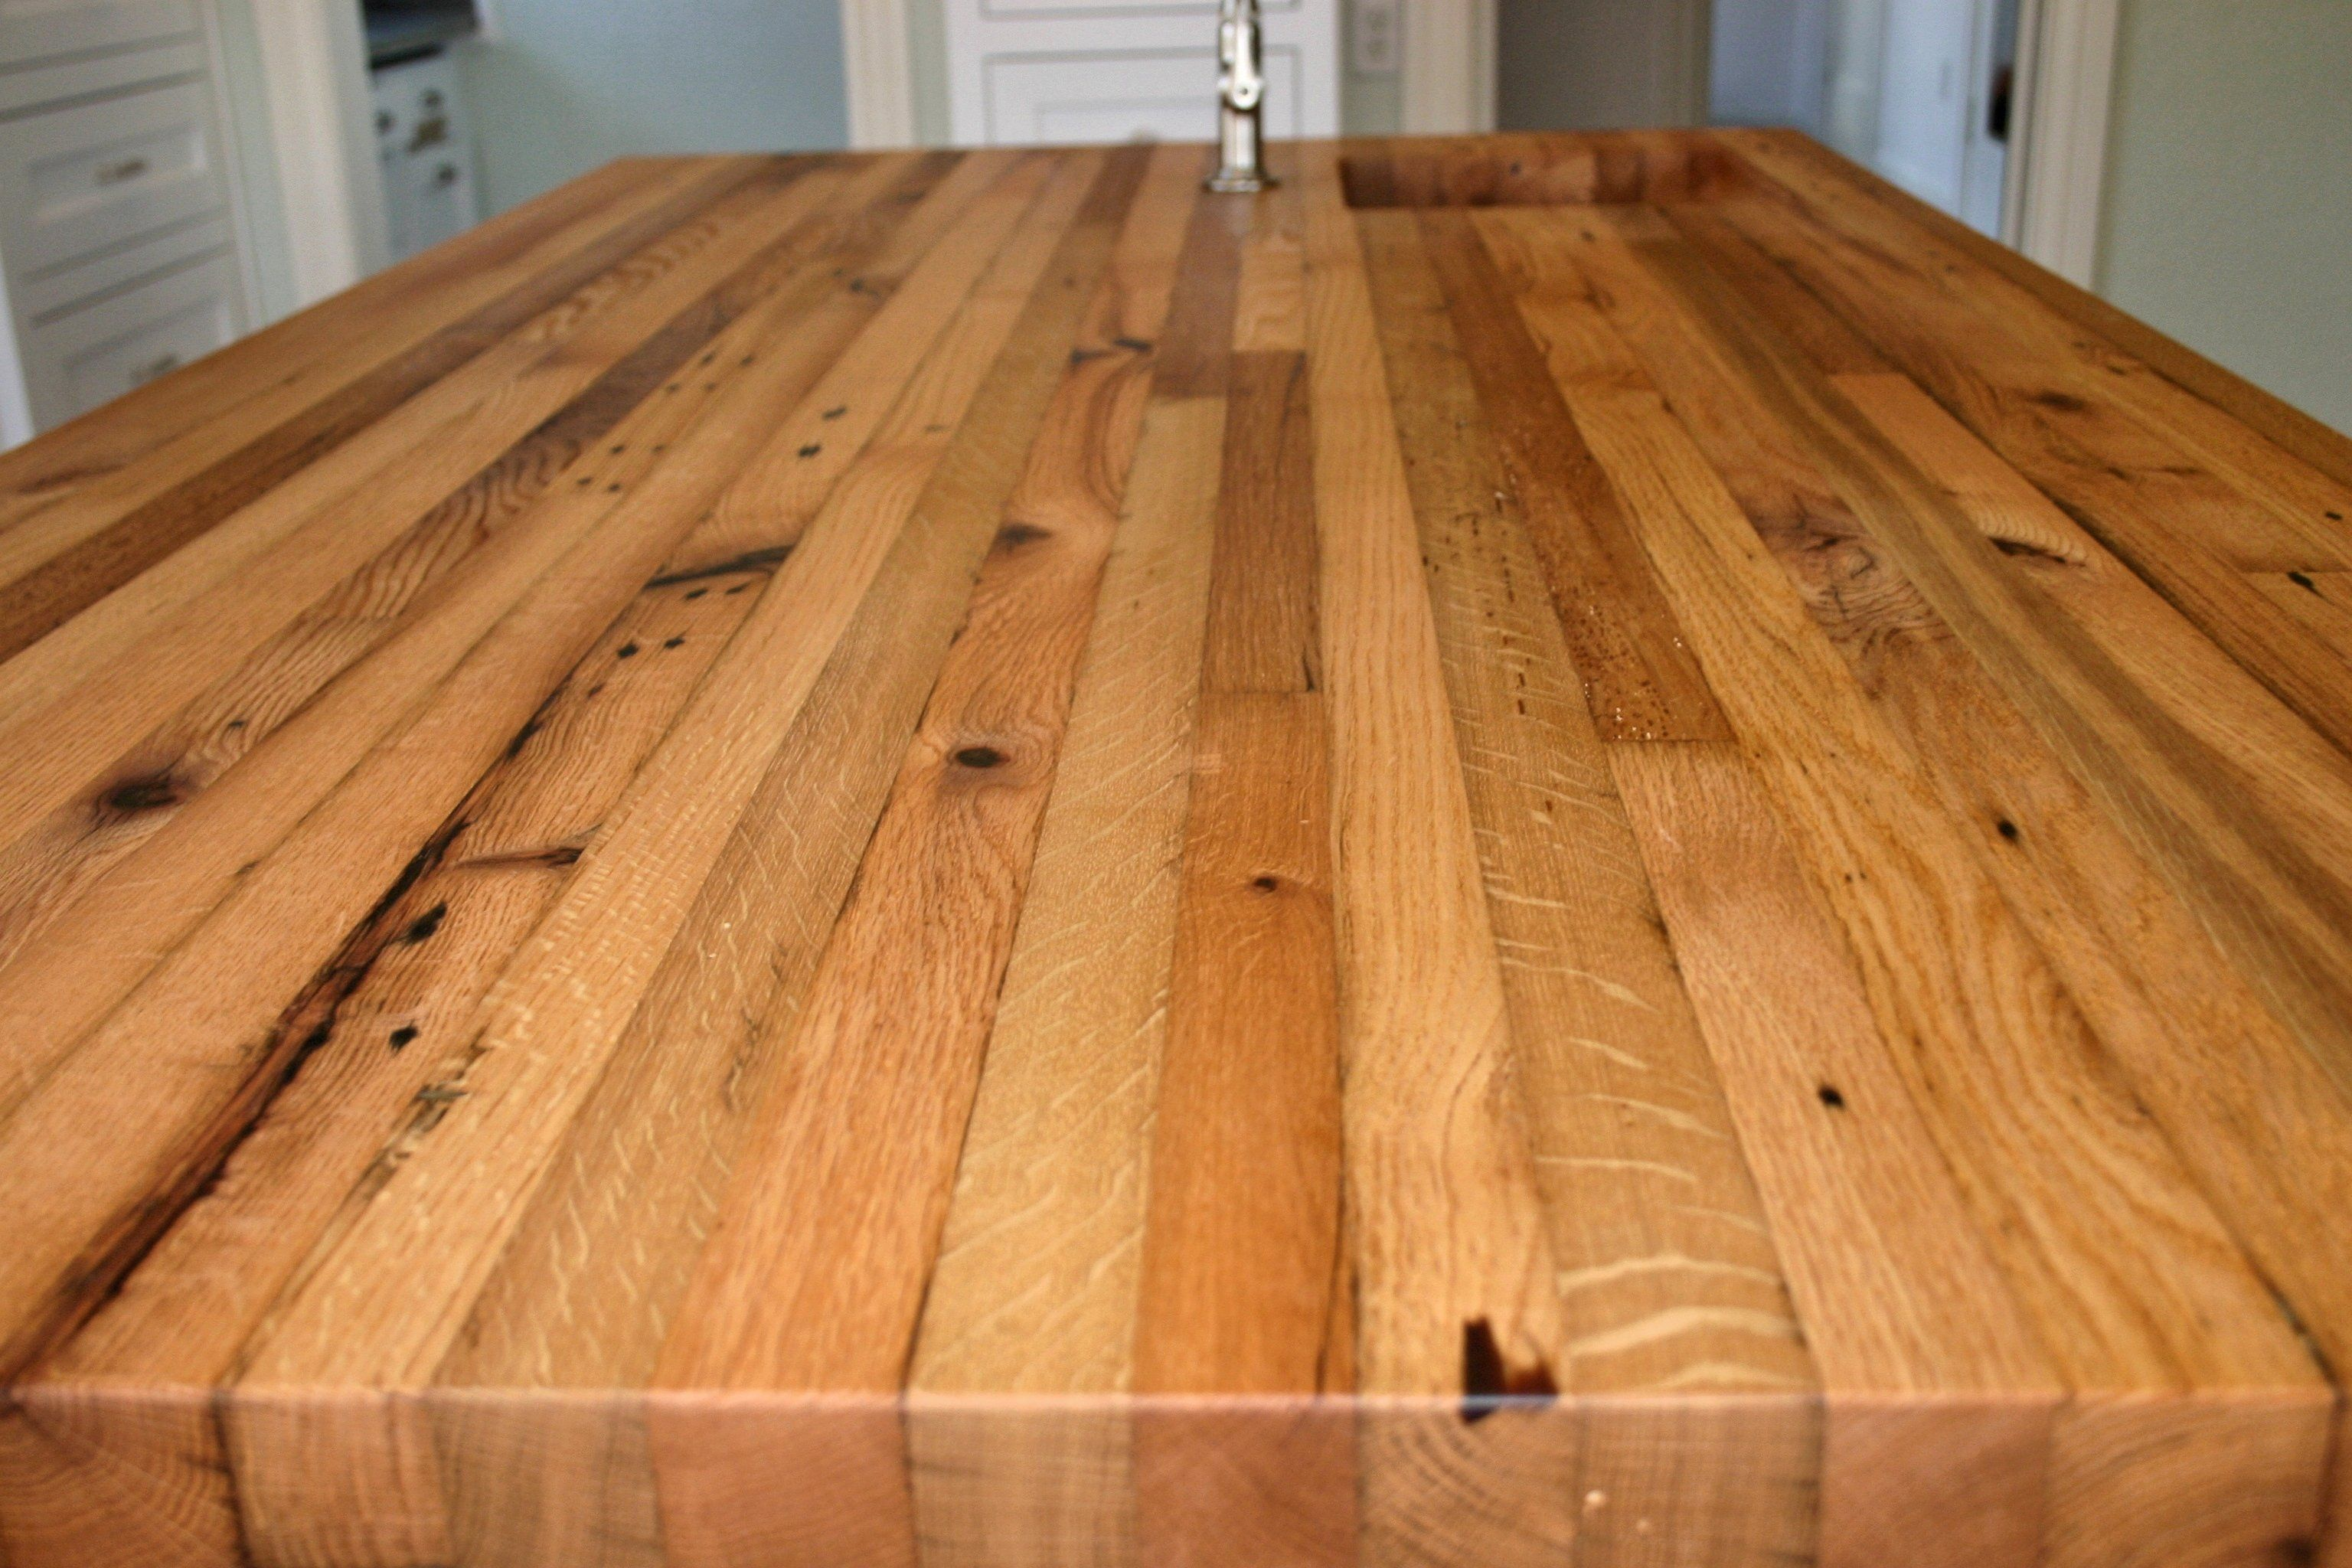 Reclaimed White Oak Face Grain Custom Wood Island Countertop White Oak Wood Wood Countertops Wood Island Countertop